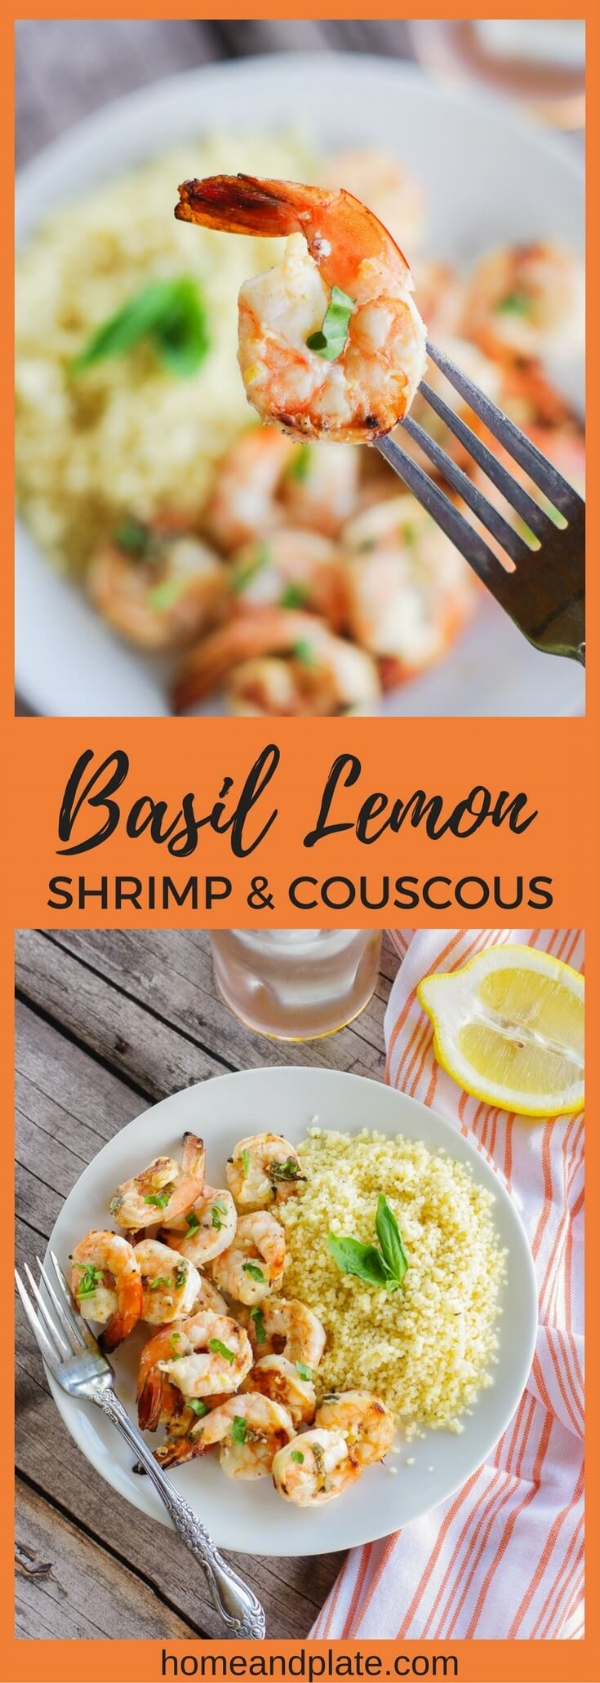 Lemon Basil Grilled Shrimp & Couscous | www.homeandplate.com | Marinated grilled shrimp flavored with lemon zest and basil served on a bed of Parmesan couscous is an easy spring and summer dinner that can be on your table in under an hour.